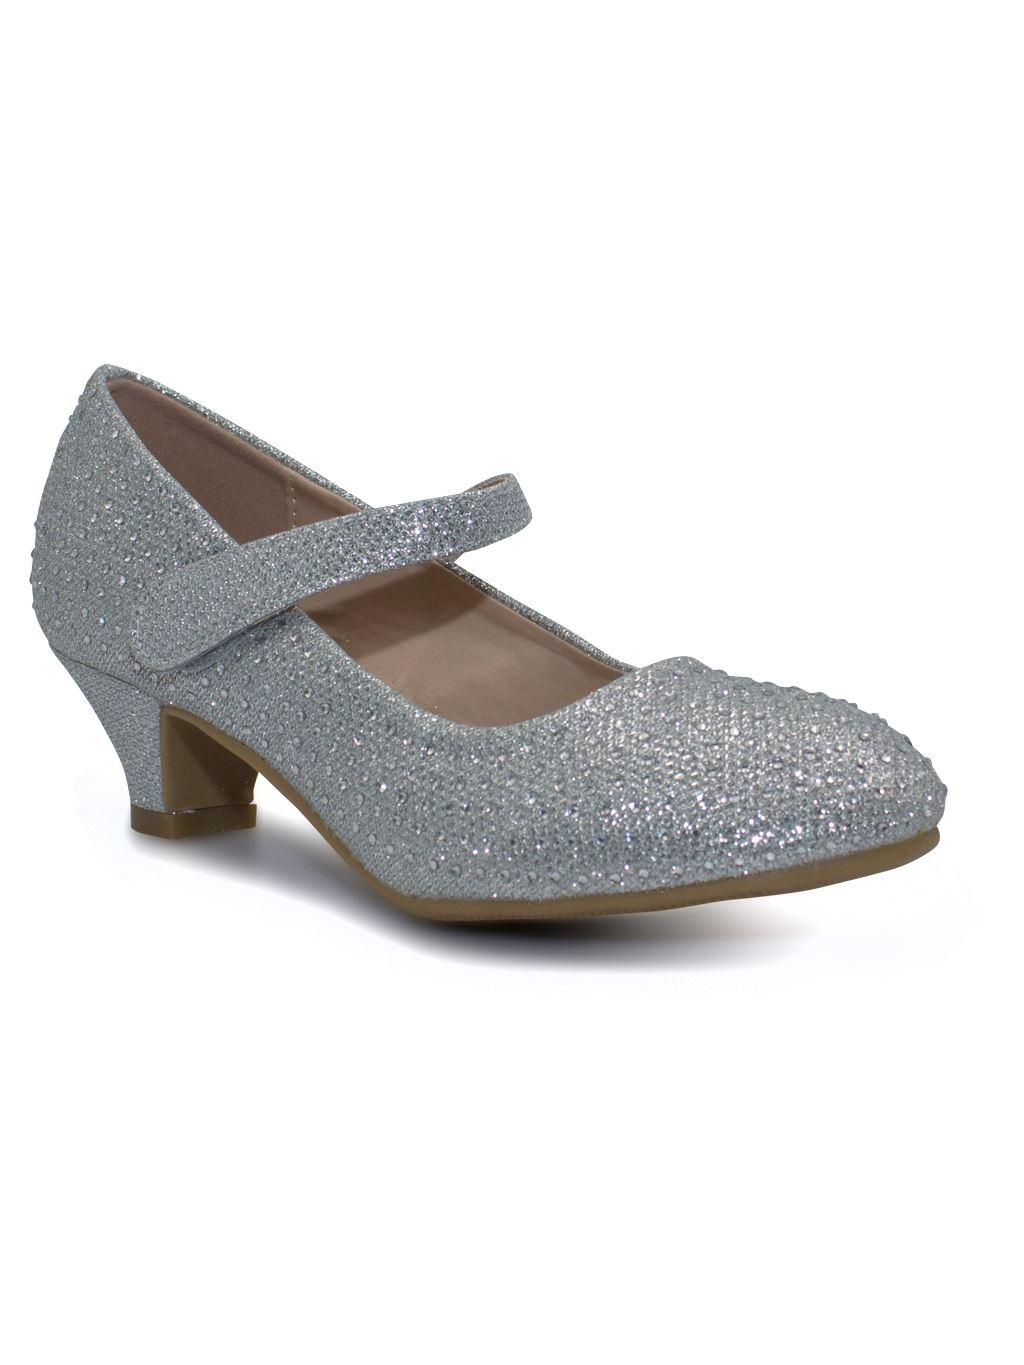 Girls-Party-Bridesmaid-Glitter-Diamante-Wedding-Block-Low-Heel-Shoes miniatura 3